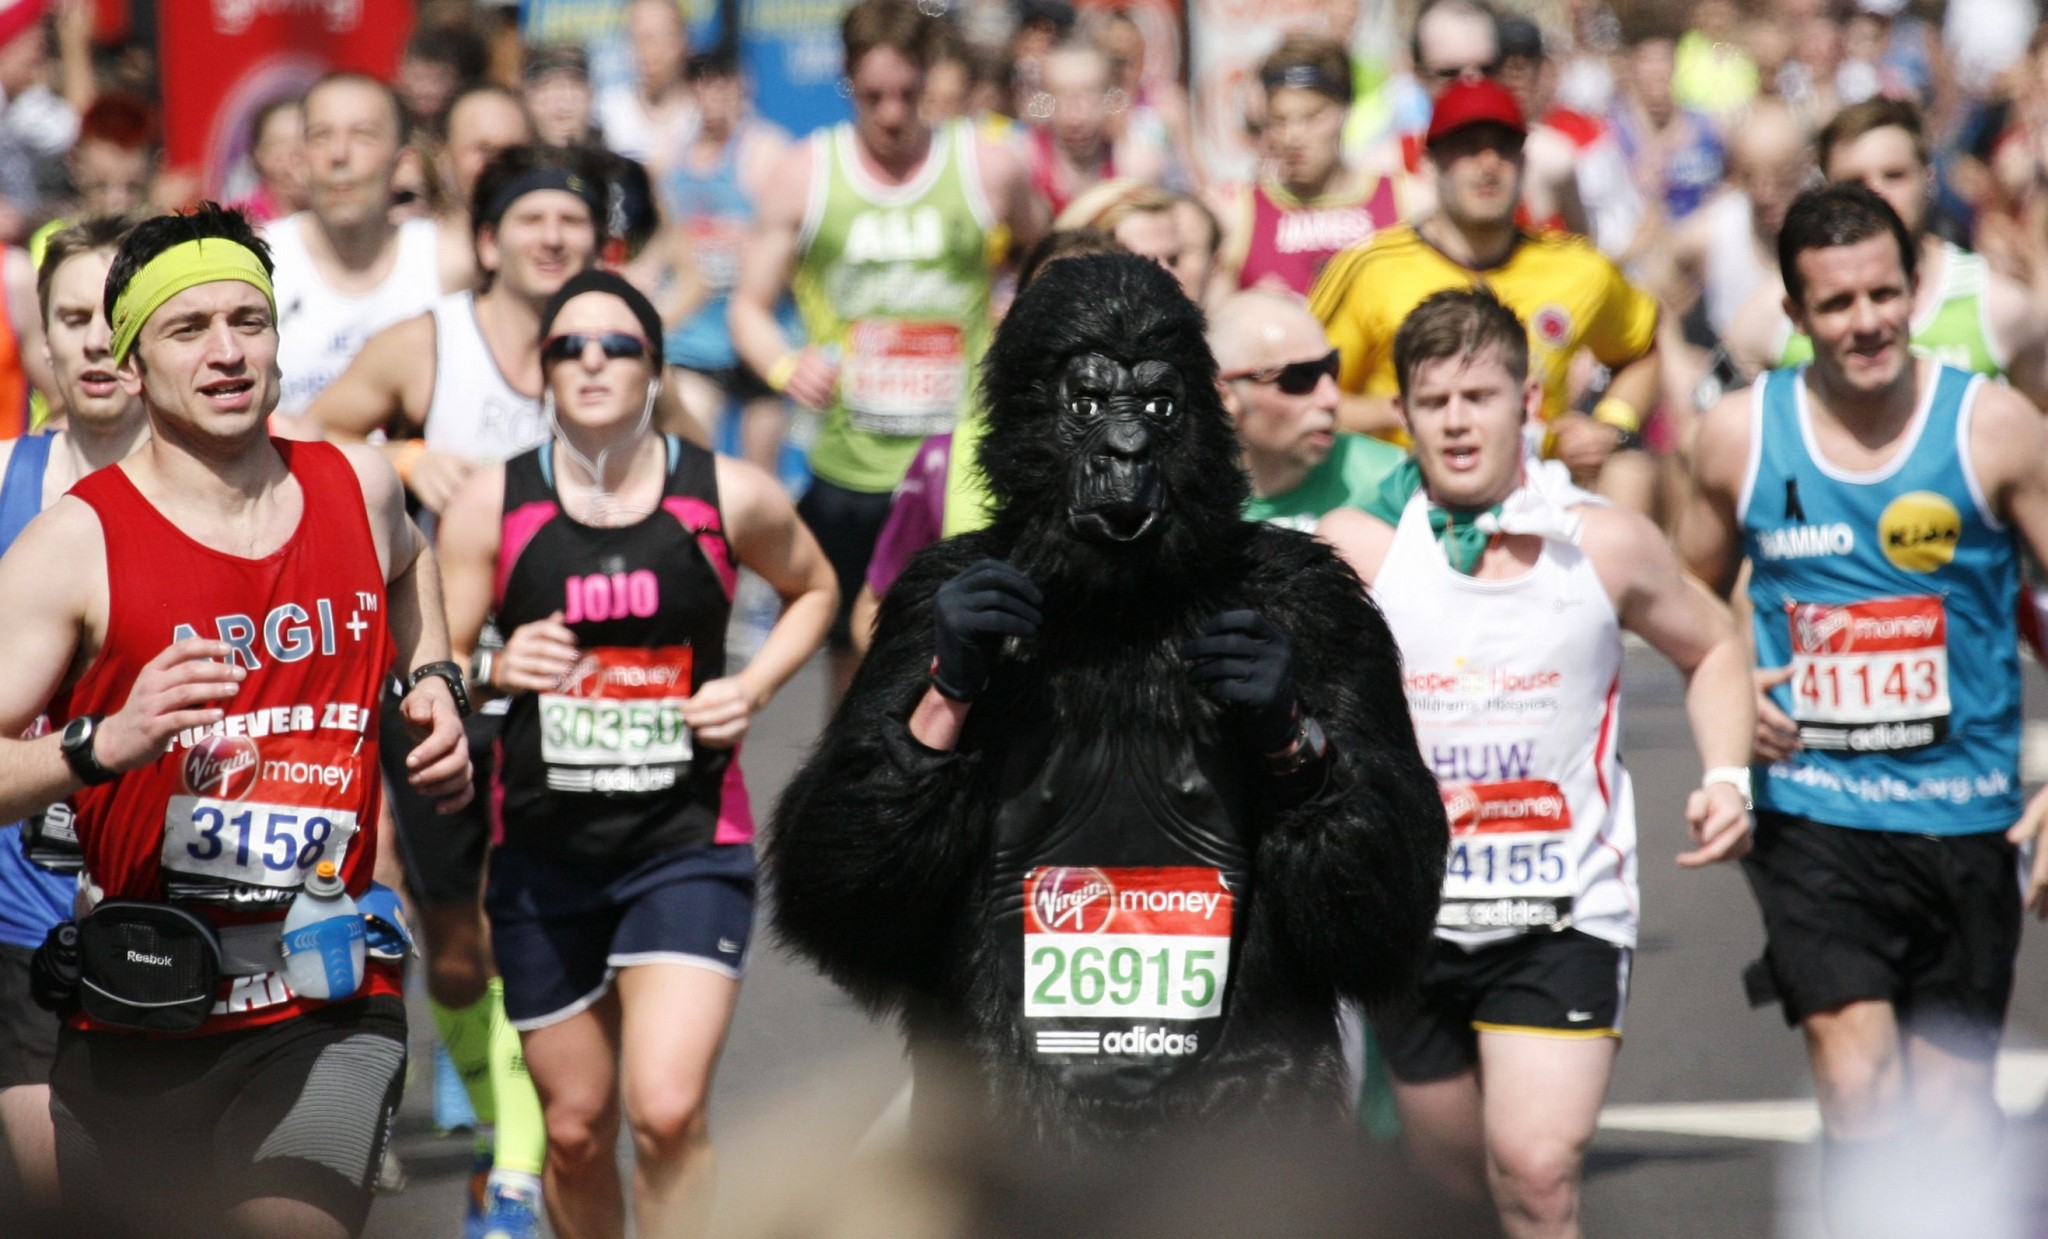 London Marathon wearing funny costume